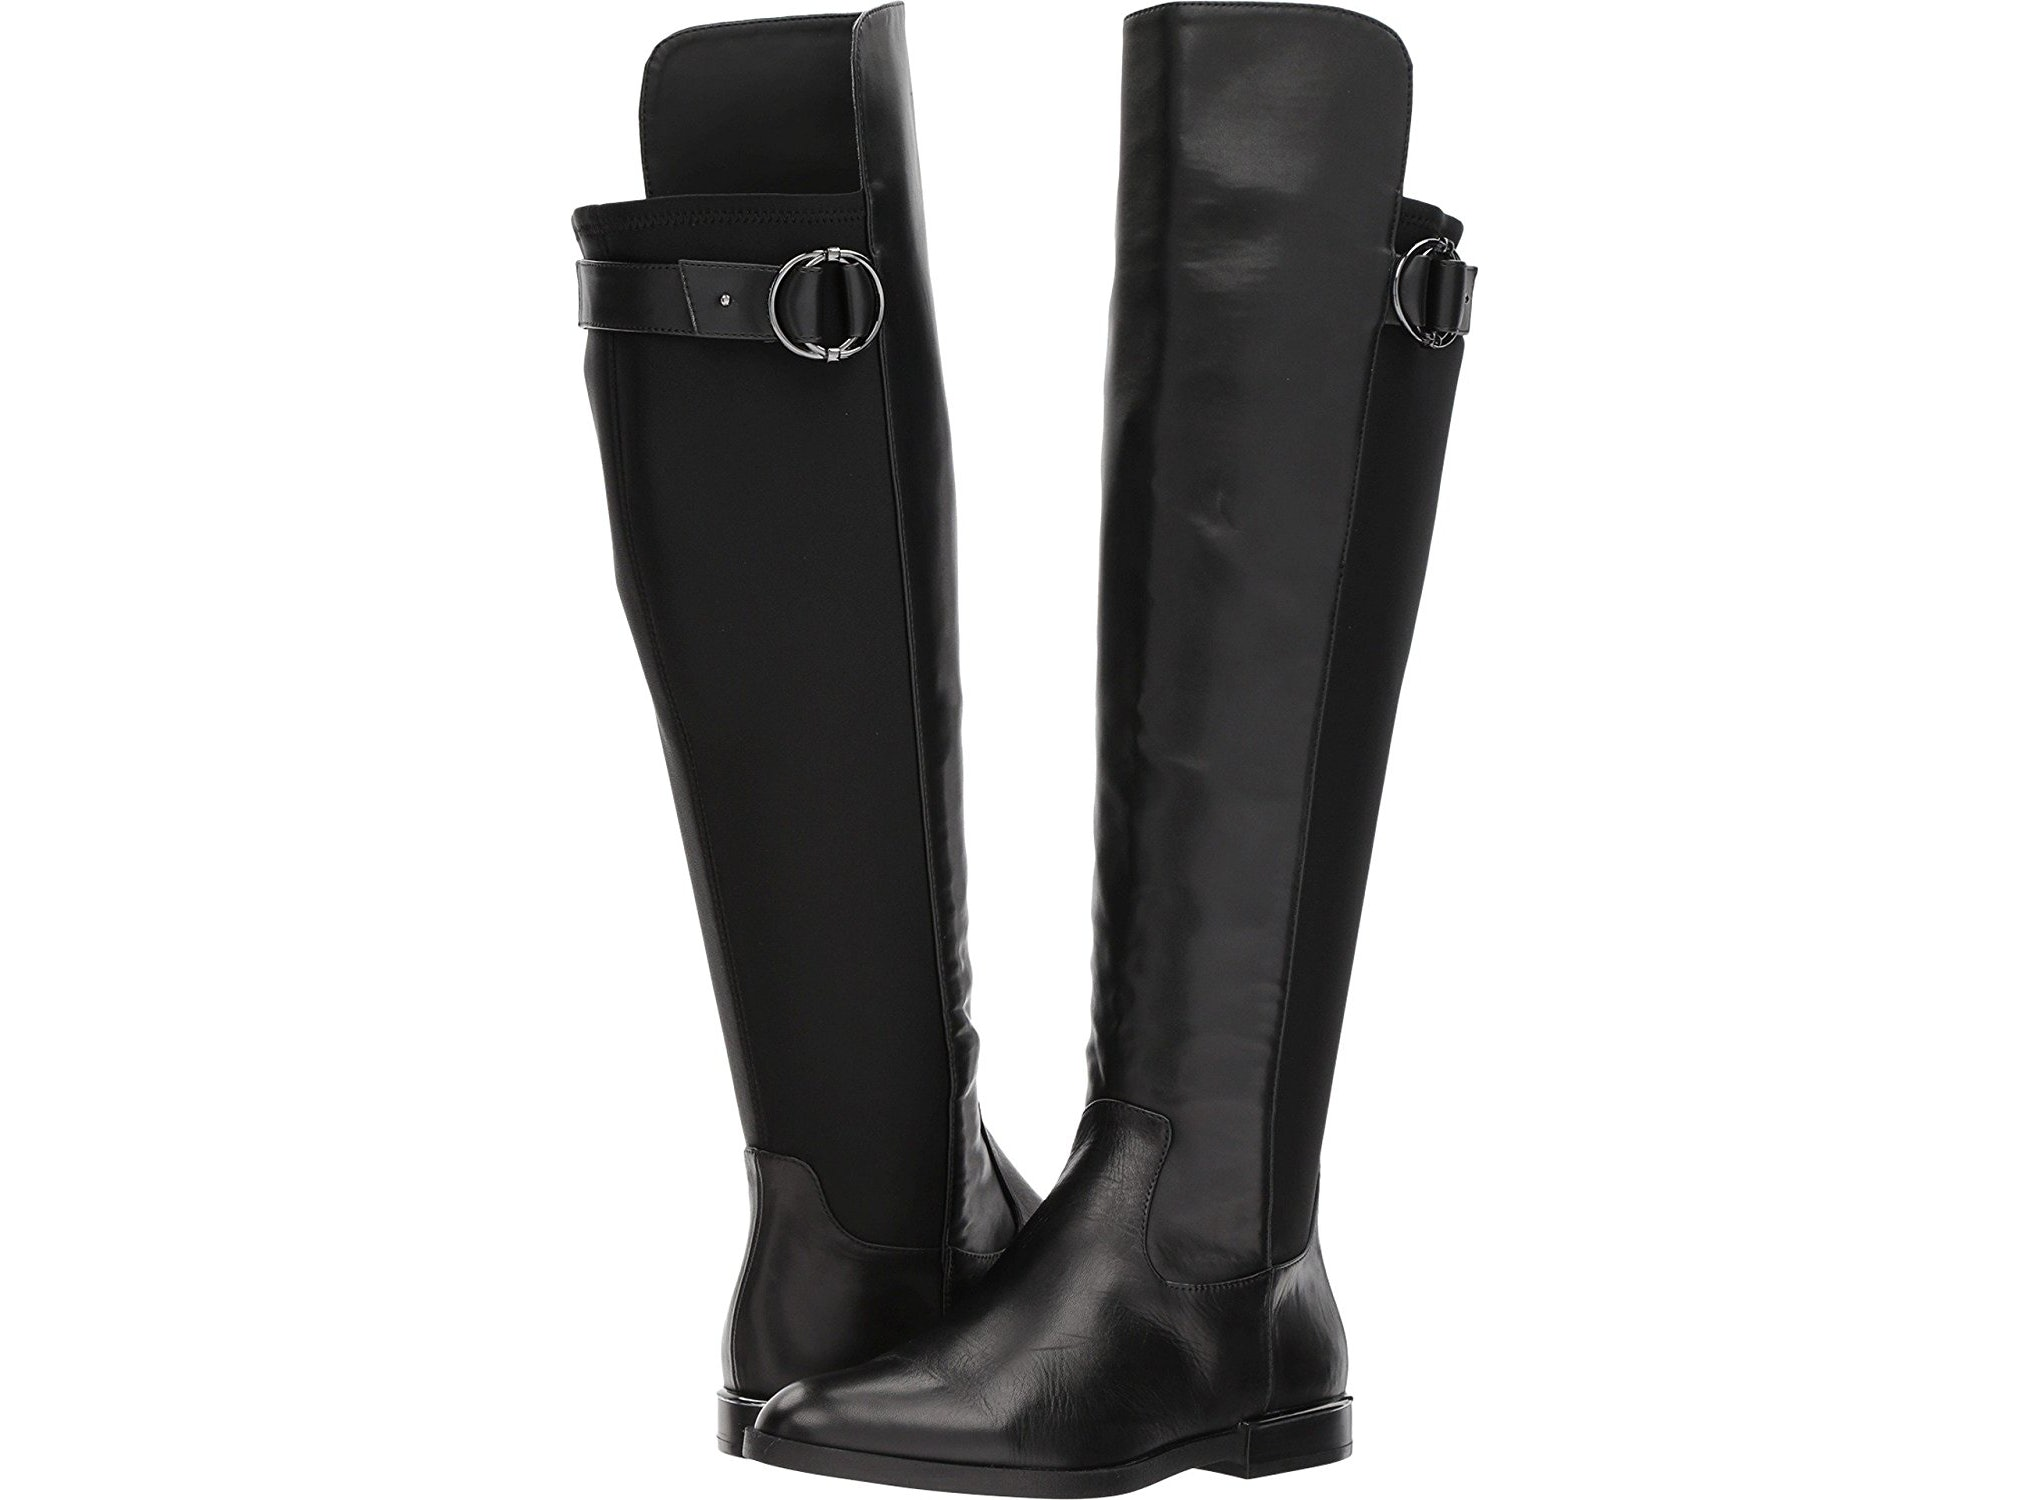 Best Over The Knee Boots For Large Calves Image